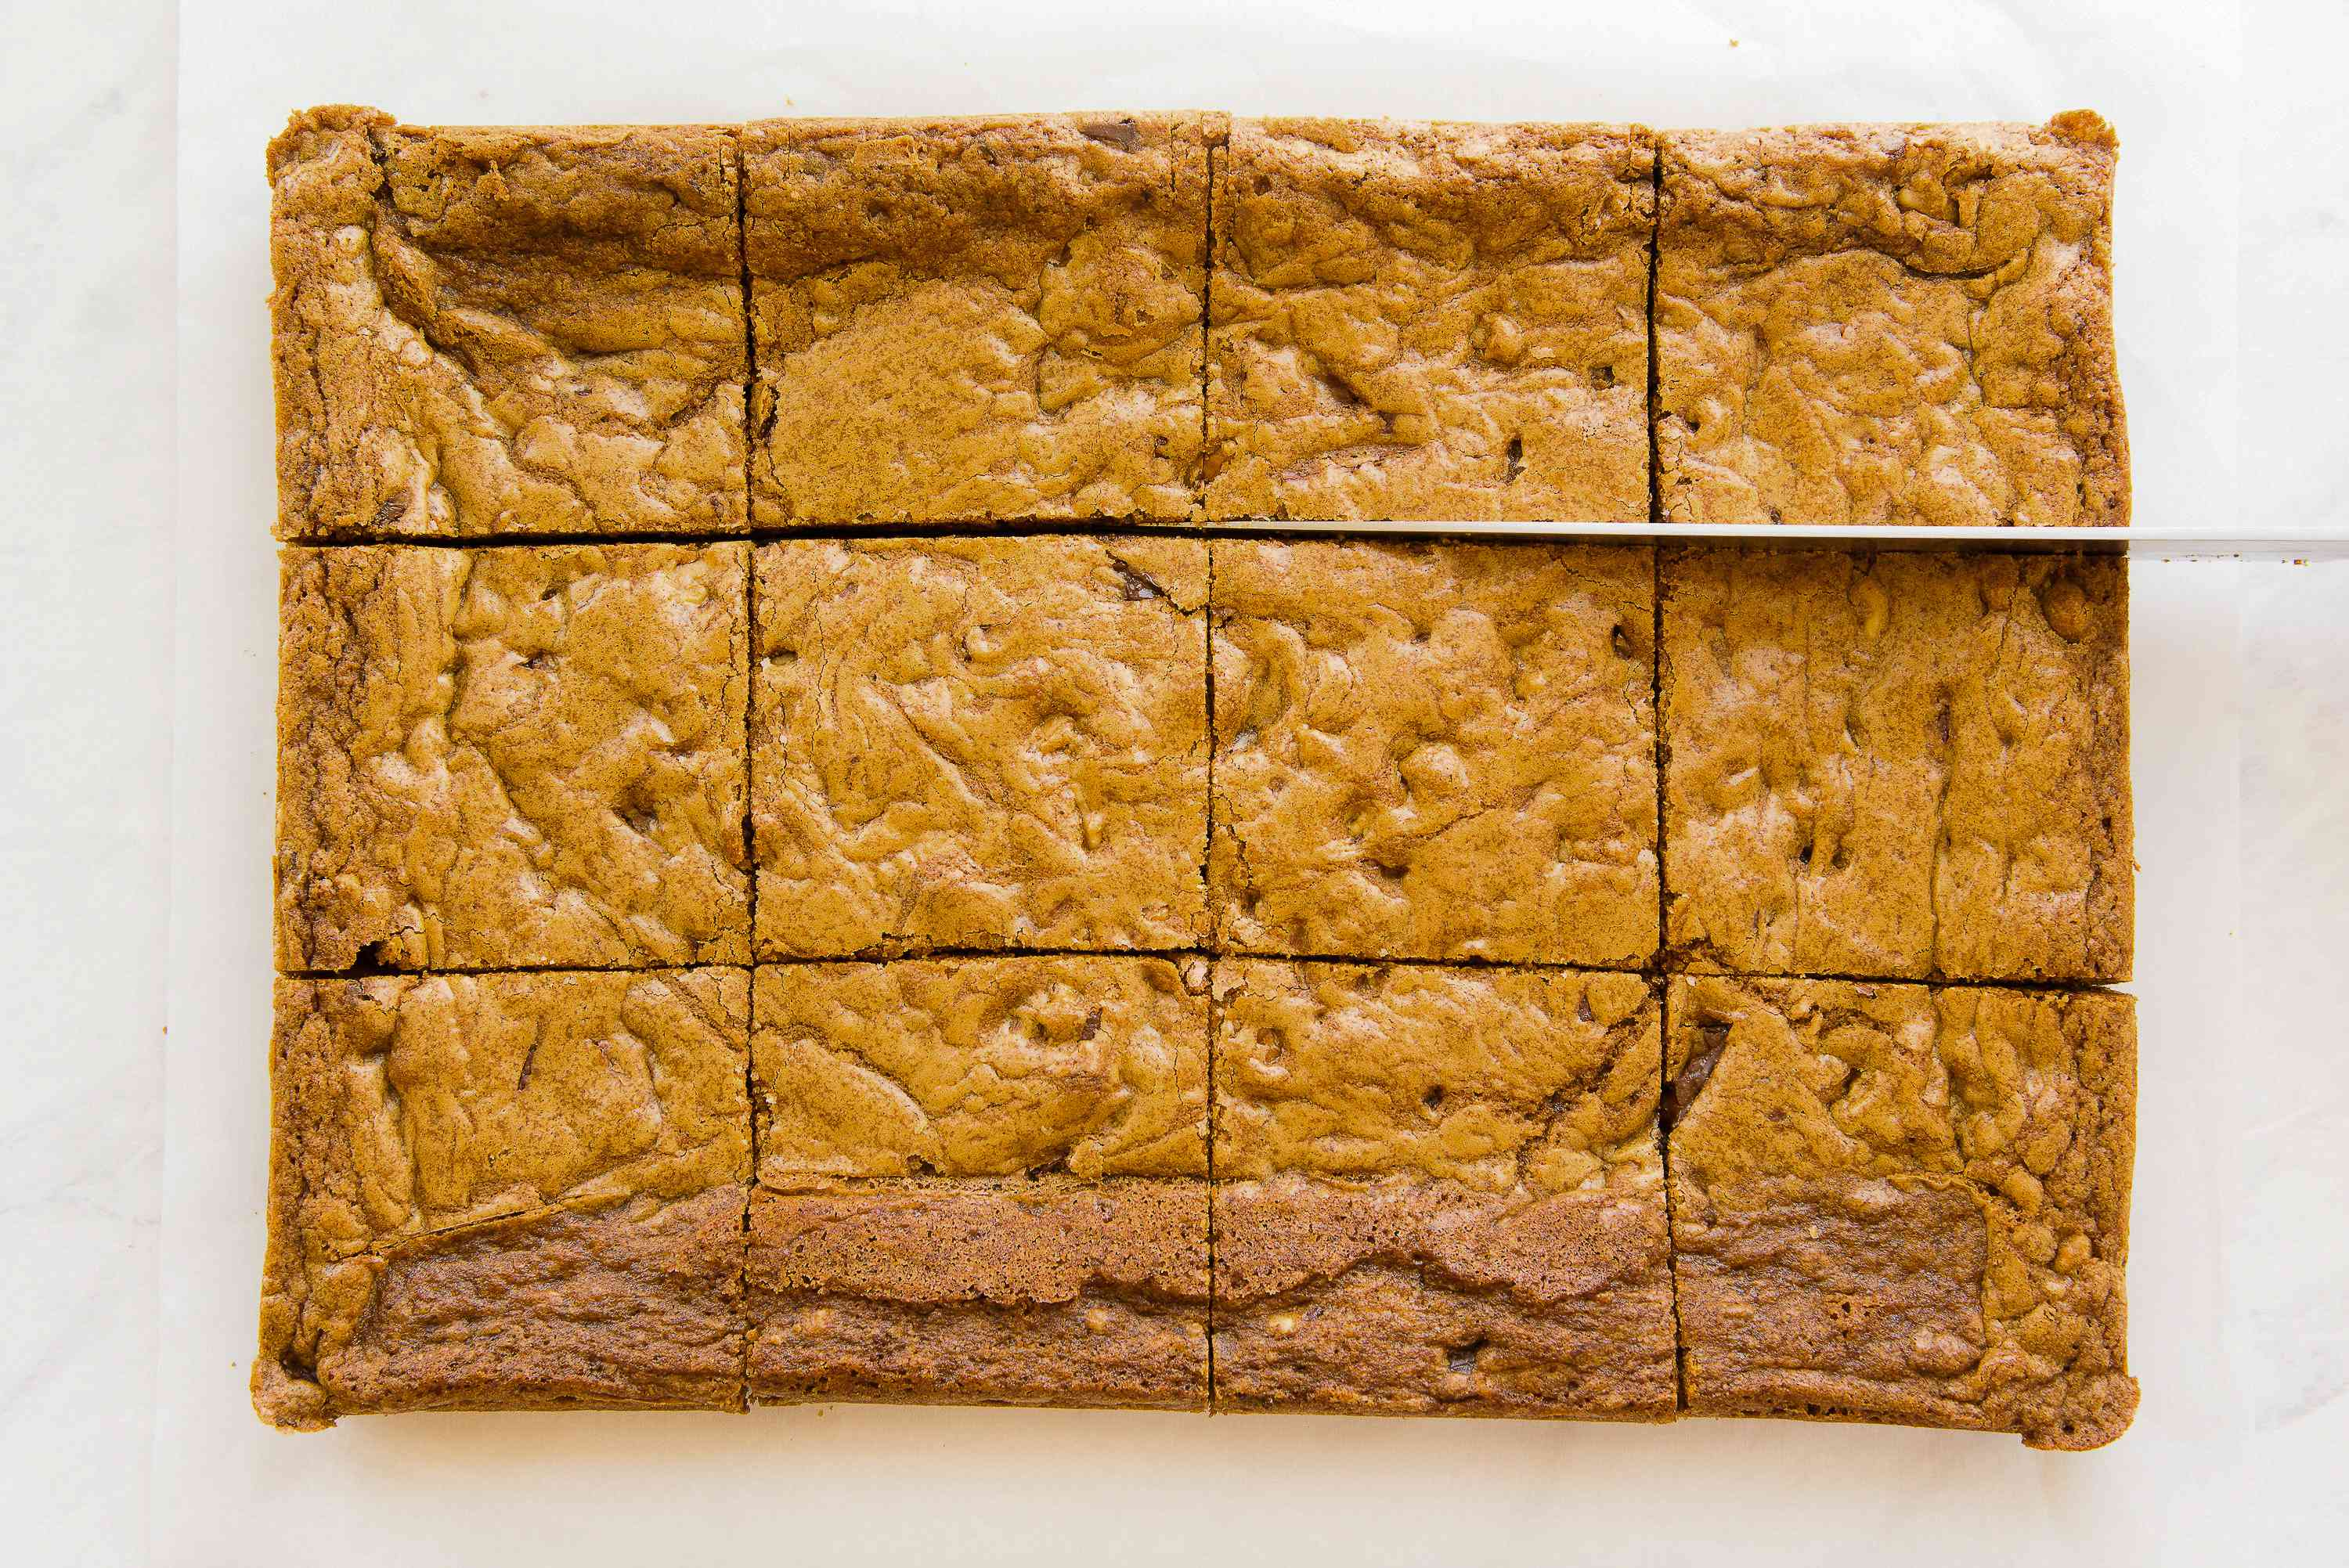 Slicing chocolate chip cookie bars into squares.